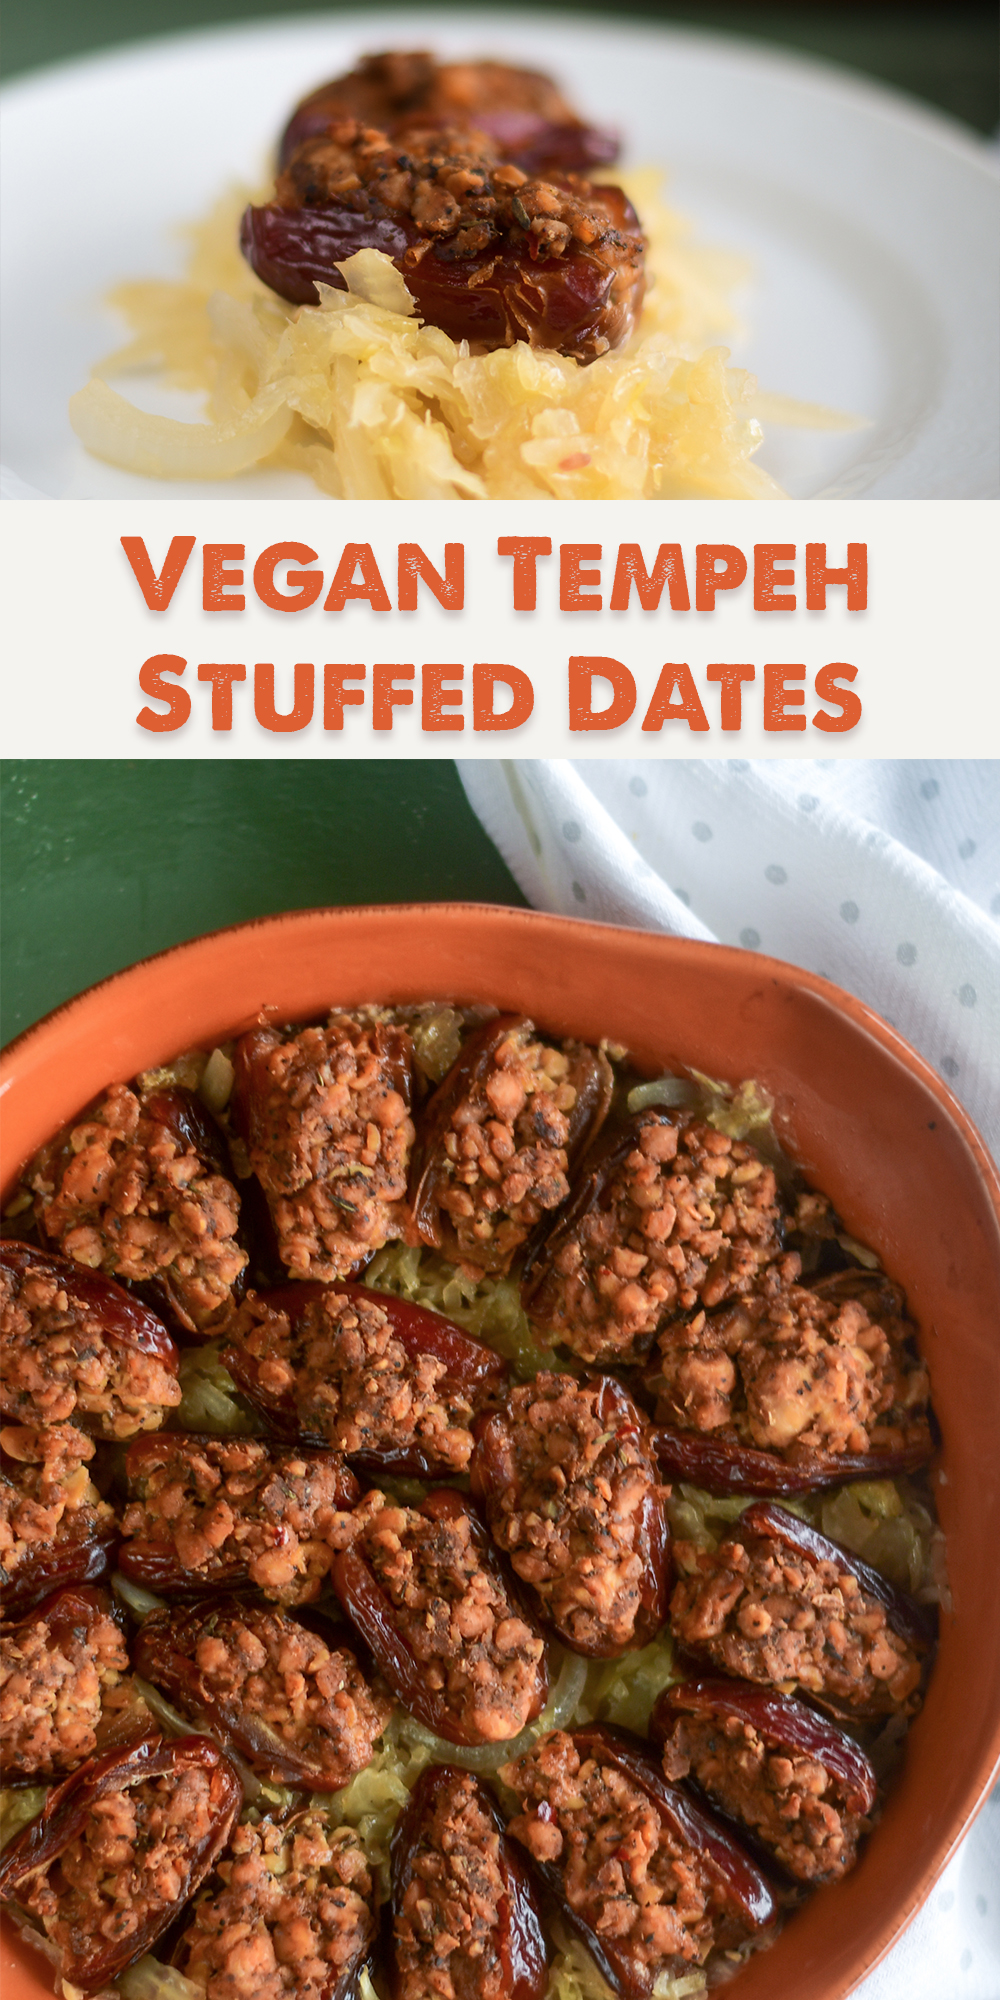 Vegan Sausage Stuffed Dates with sauerkraut are a sweet and savory appetizer perfect for entertaining! #Vegan #recipes #Christmas #veganrecipes #holiday #appetizer #dates #healthyrecipes